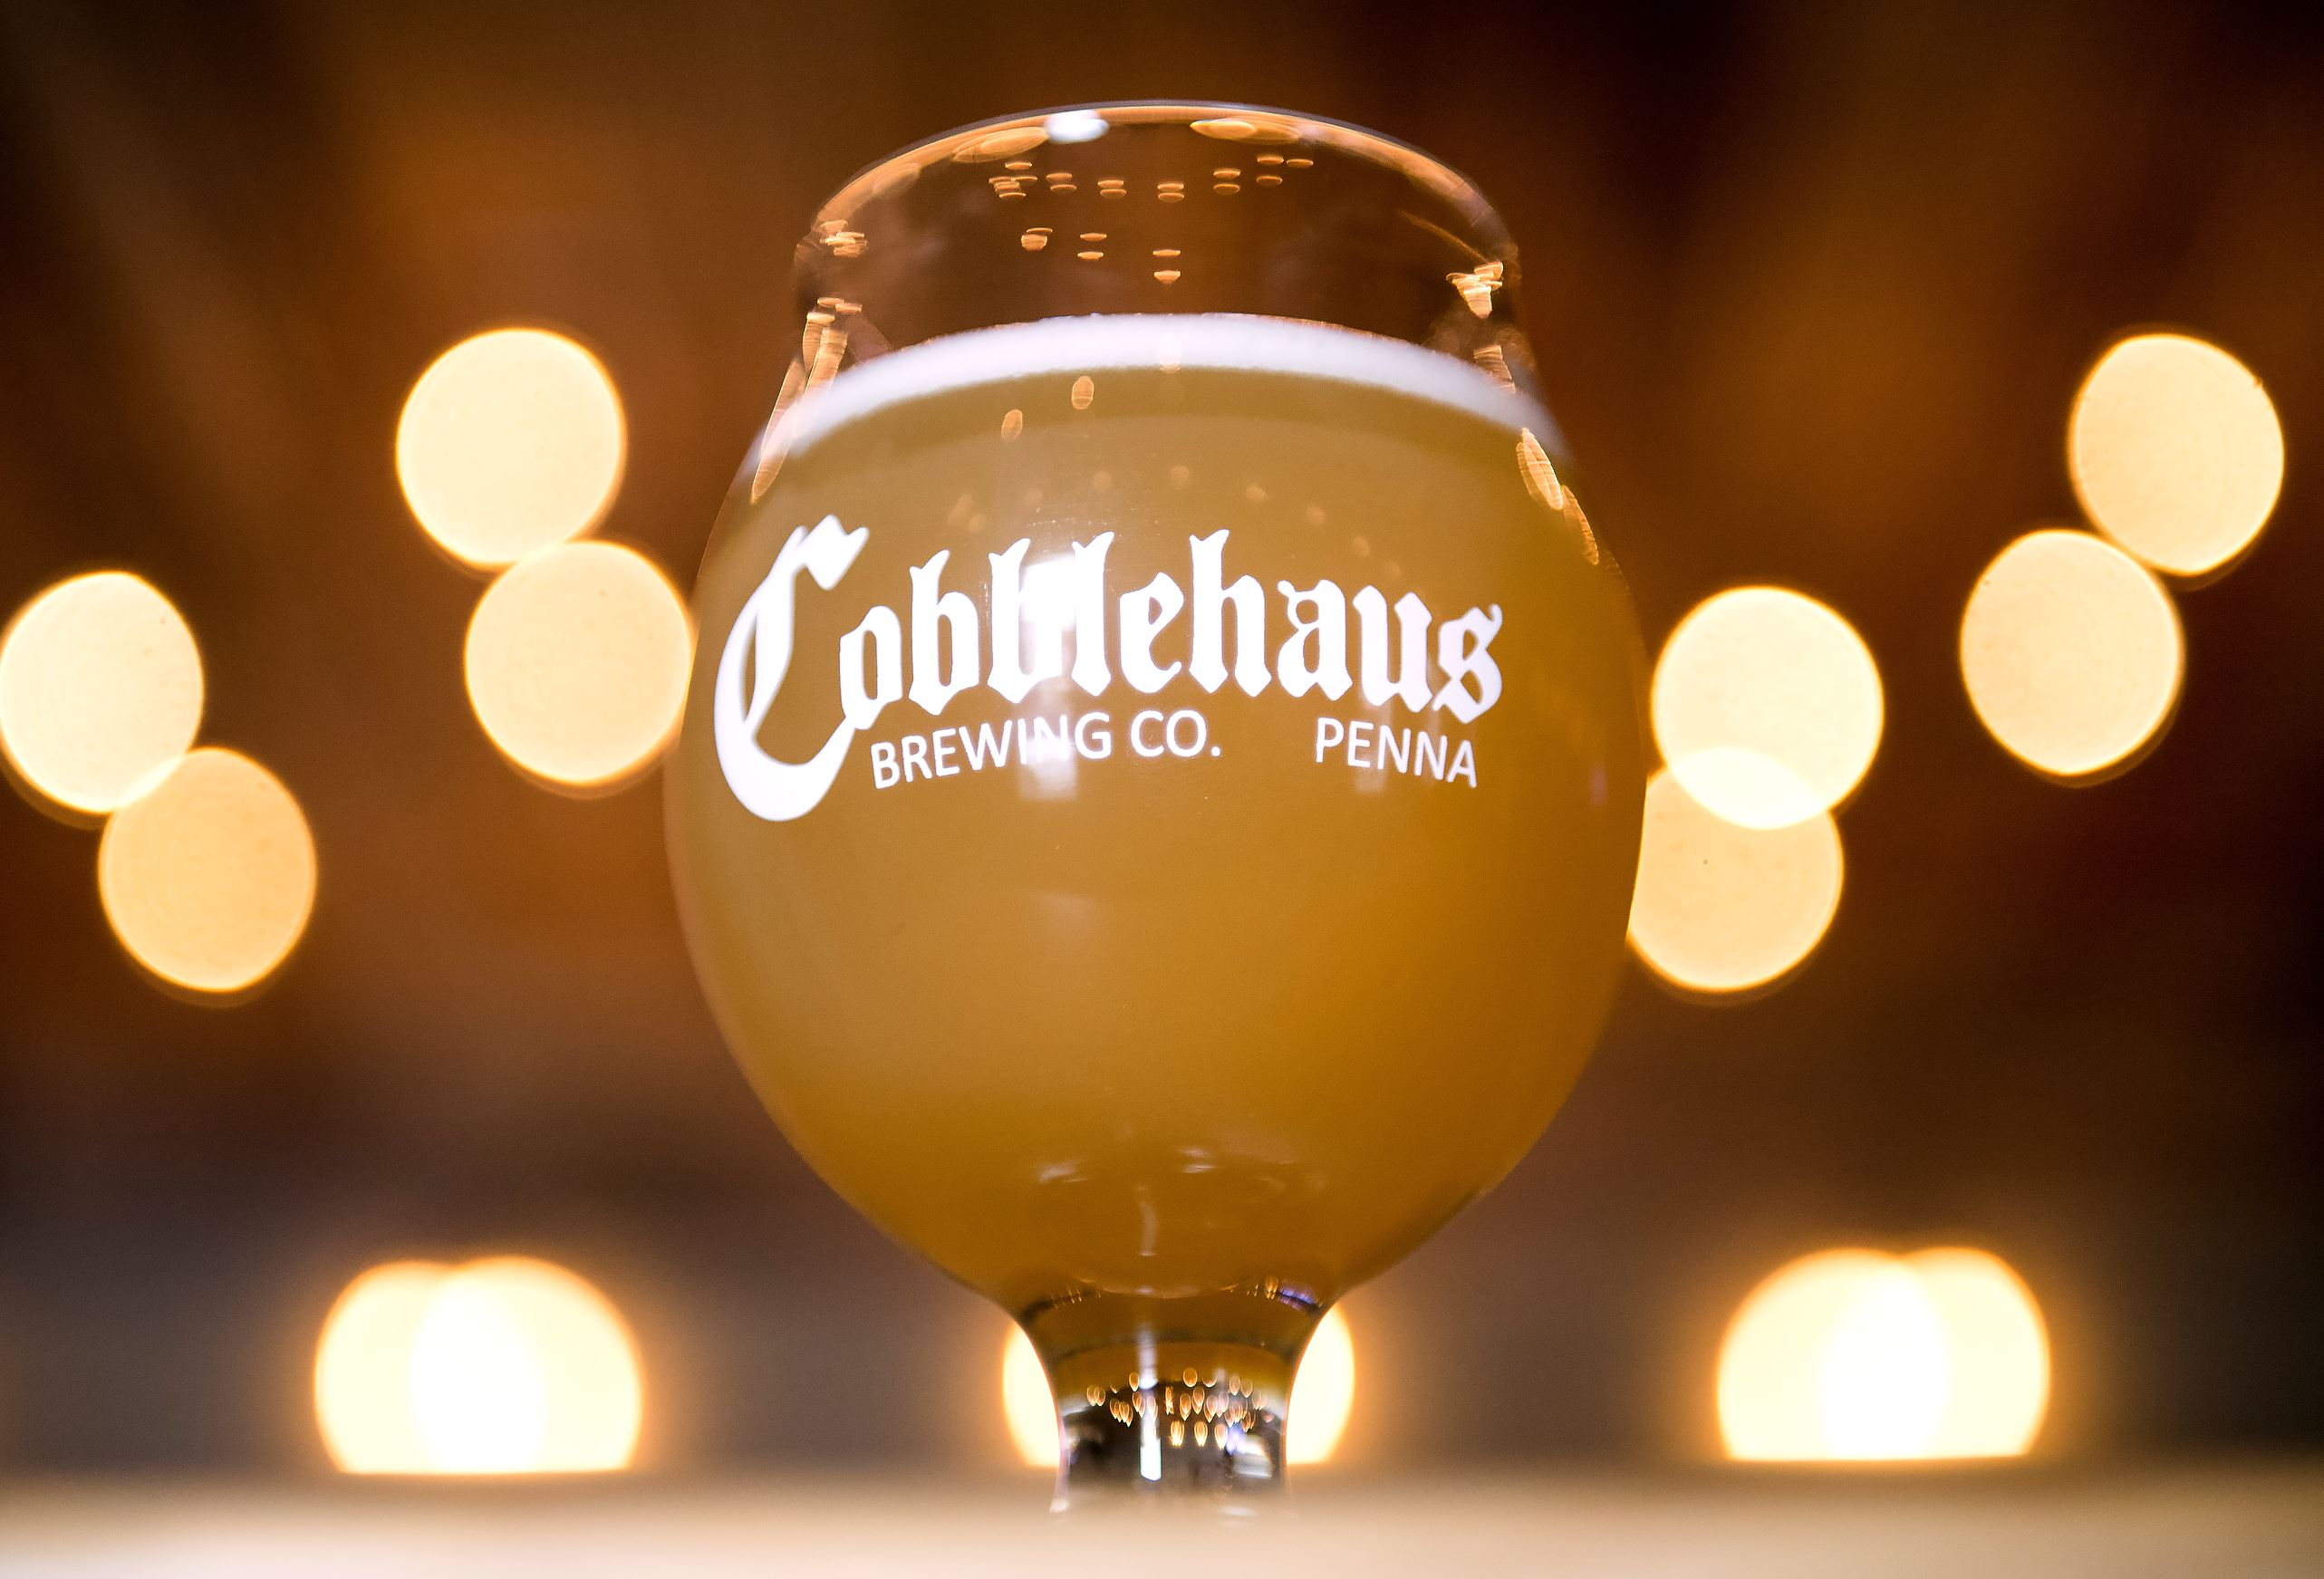 """20170505scCobblehaus-01-3 A """"Maiden of the Ohio"""" Belgian-style Wit is shown."""